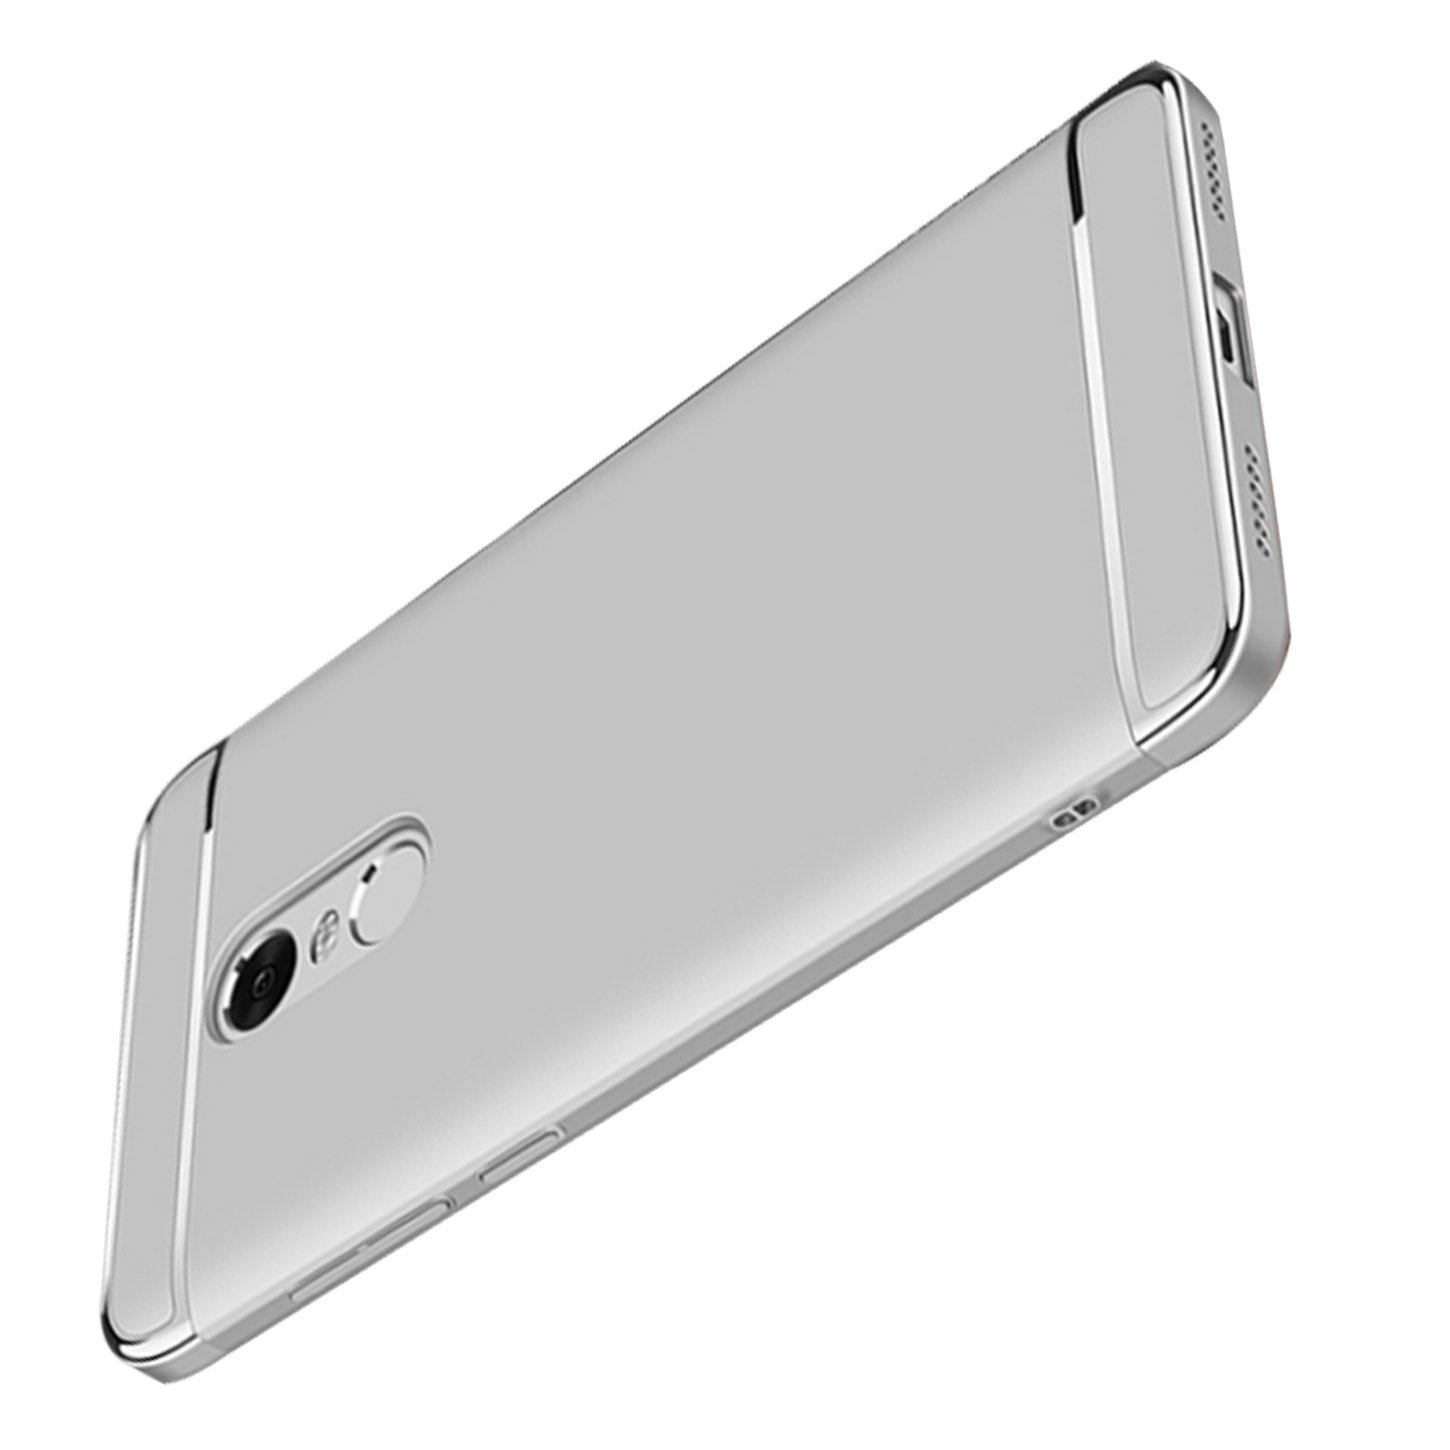 Funda Xiaomi Redmi note 4,Carcasa Funda Ultra-Delgado Luxury 3 en 1 Desmontable Anti-Ara/ñazos Hard Case Cover Protectora Funda para Xiaomi Redmi note 4,Dolado